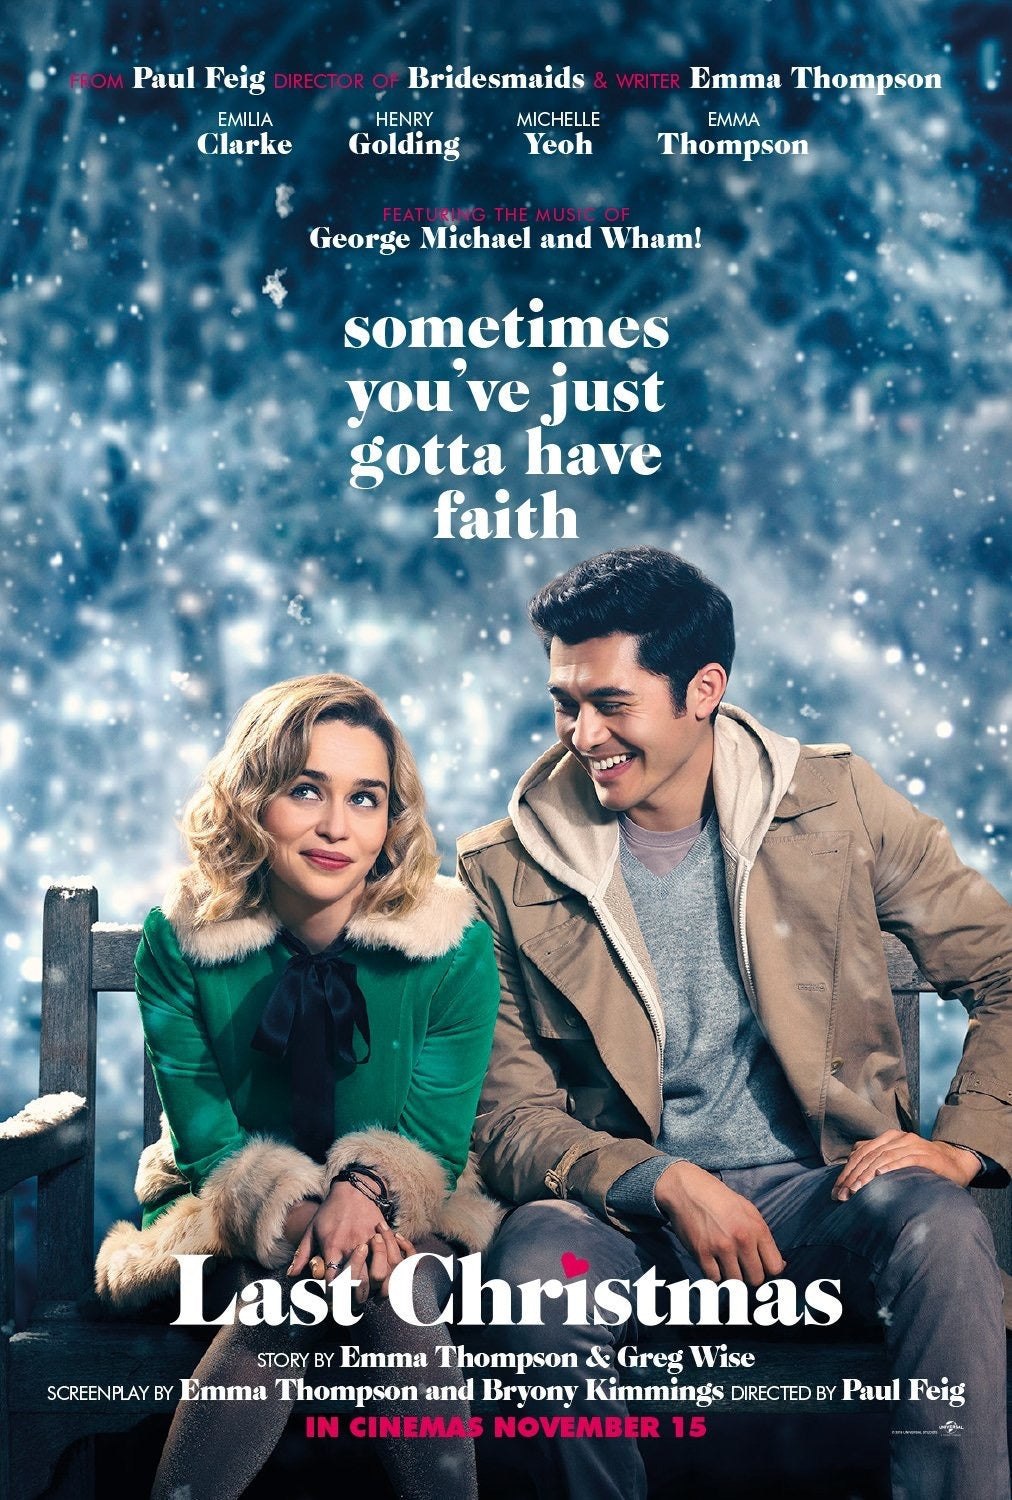 Last Christmas (2019) movie poster